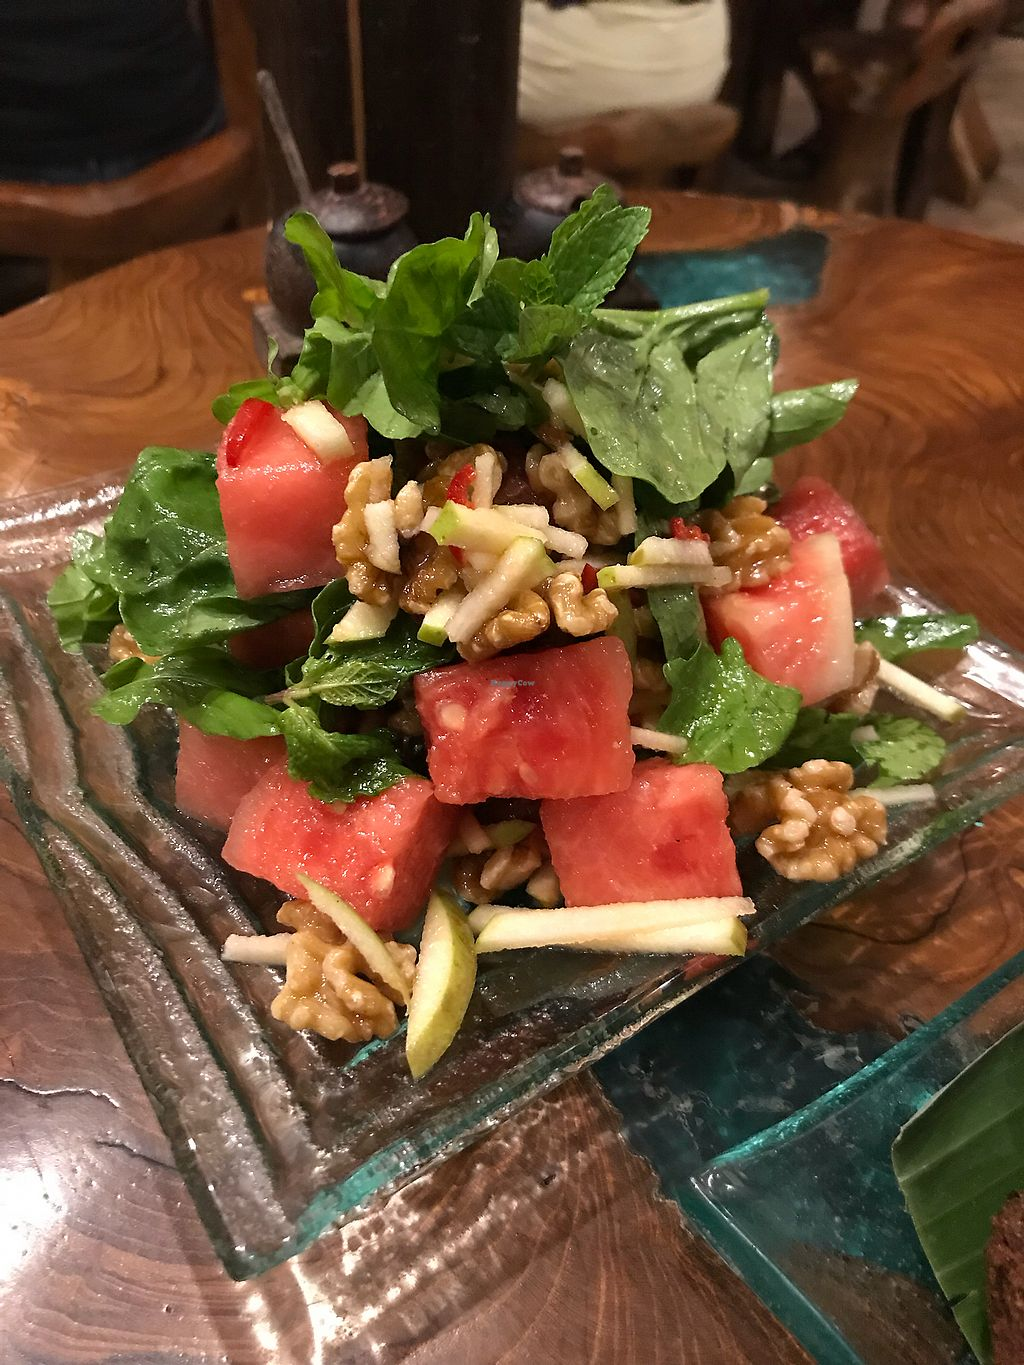 """Photo of Atman Kafe  by <a href=""""/members/profile/LolaNachtigall"""">LolaNachtigall</a> <br/>Vegan Watermelon Salad <br/> March 7, 2018  - <a href='/contact/abuse/image/62560/367754'>Report</a>"""